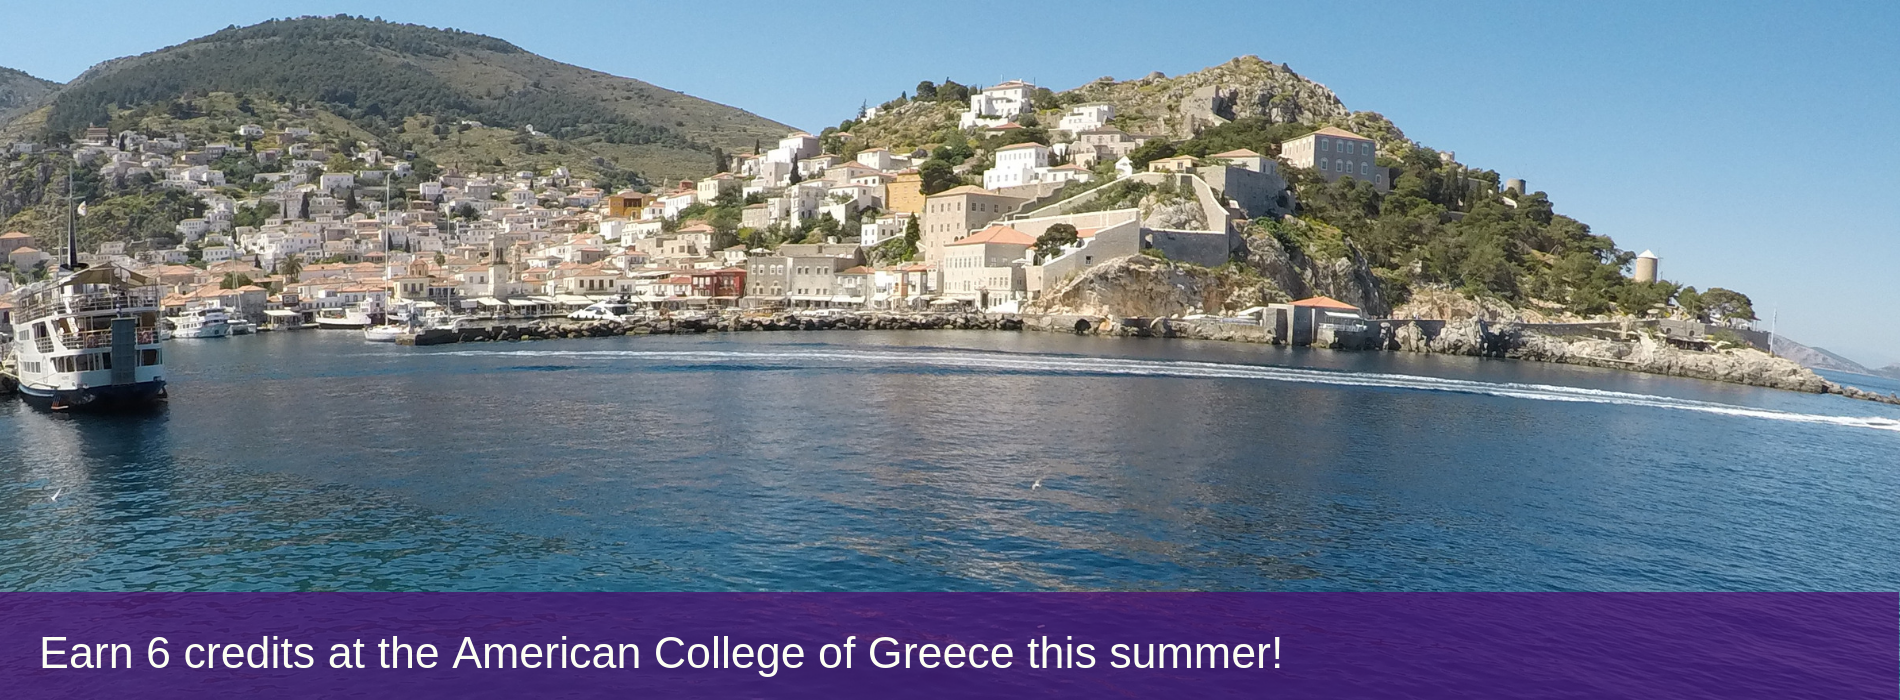 Earn 6 credits at the American College of Greece this summer!